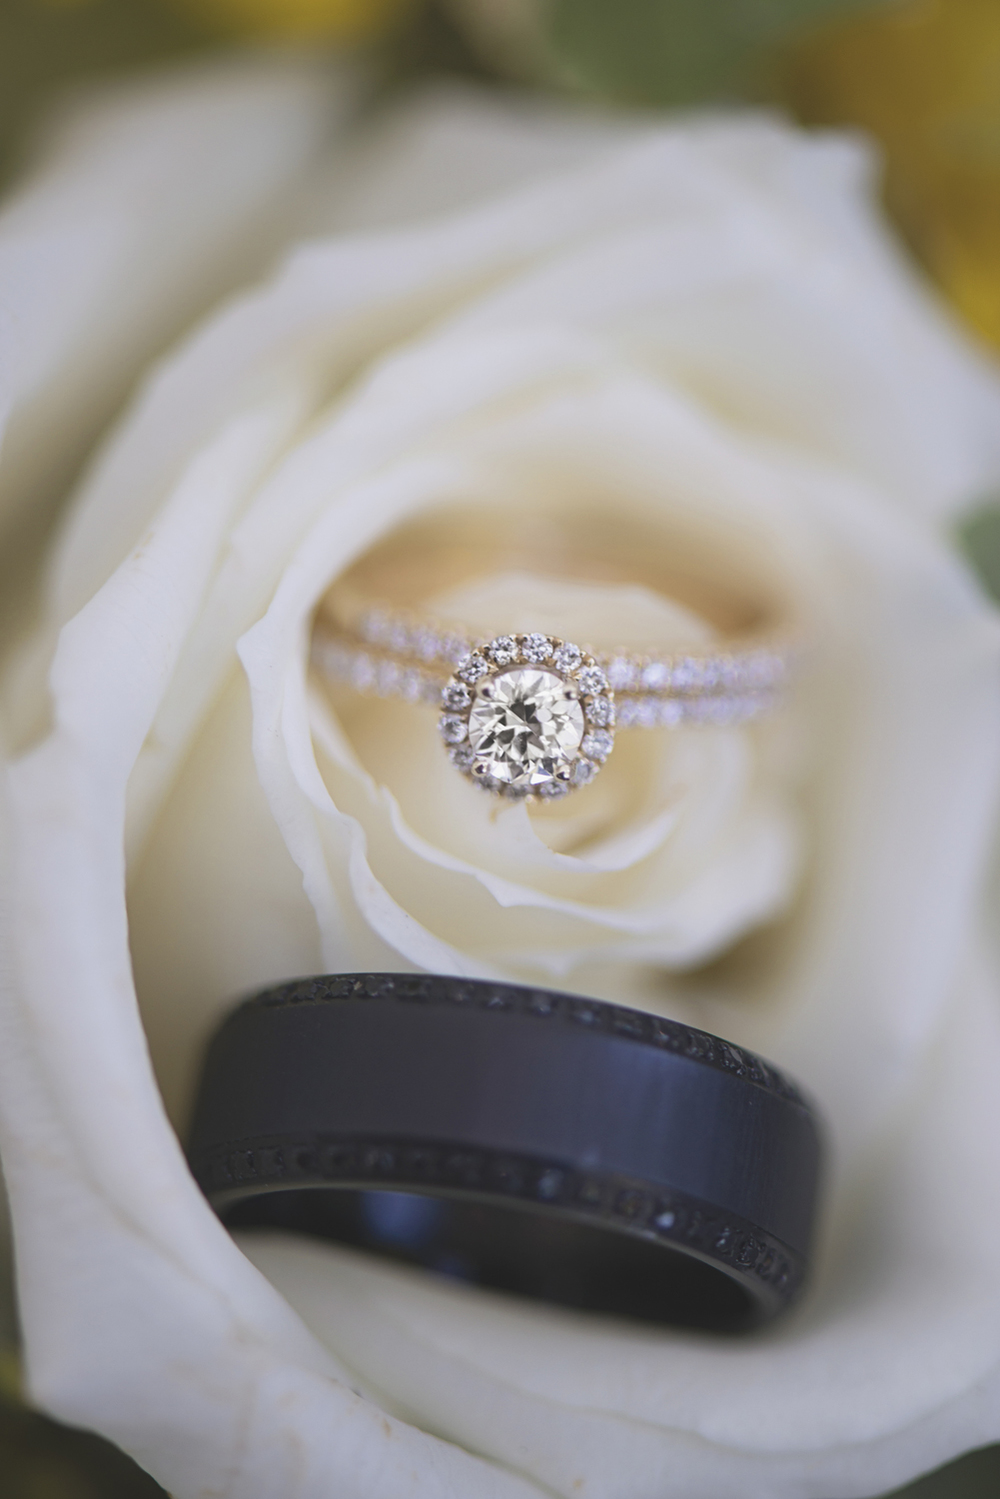 Confederate Hills Recreation Center Wedding | Richmond, Virginia Wedding | Rose gold and onyx wedding bands